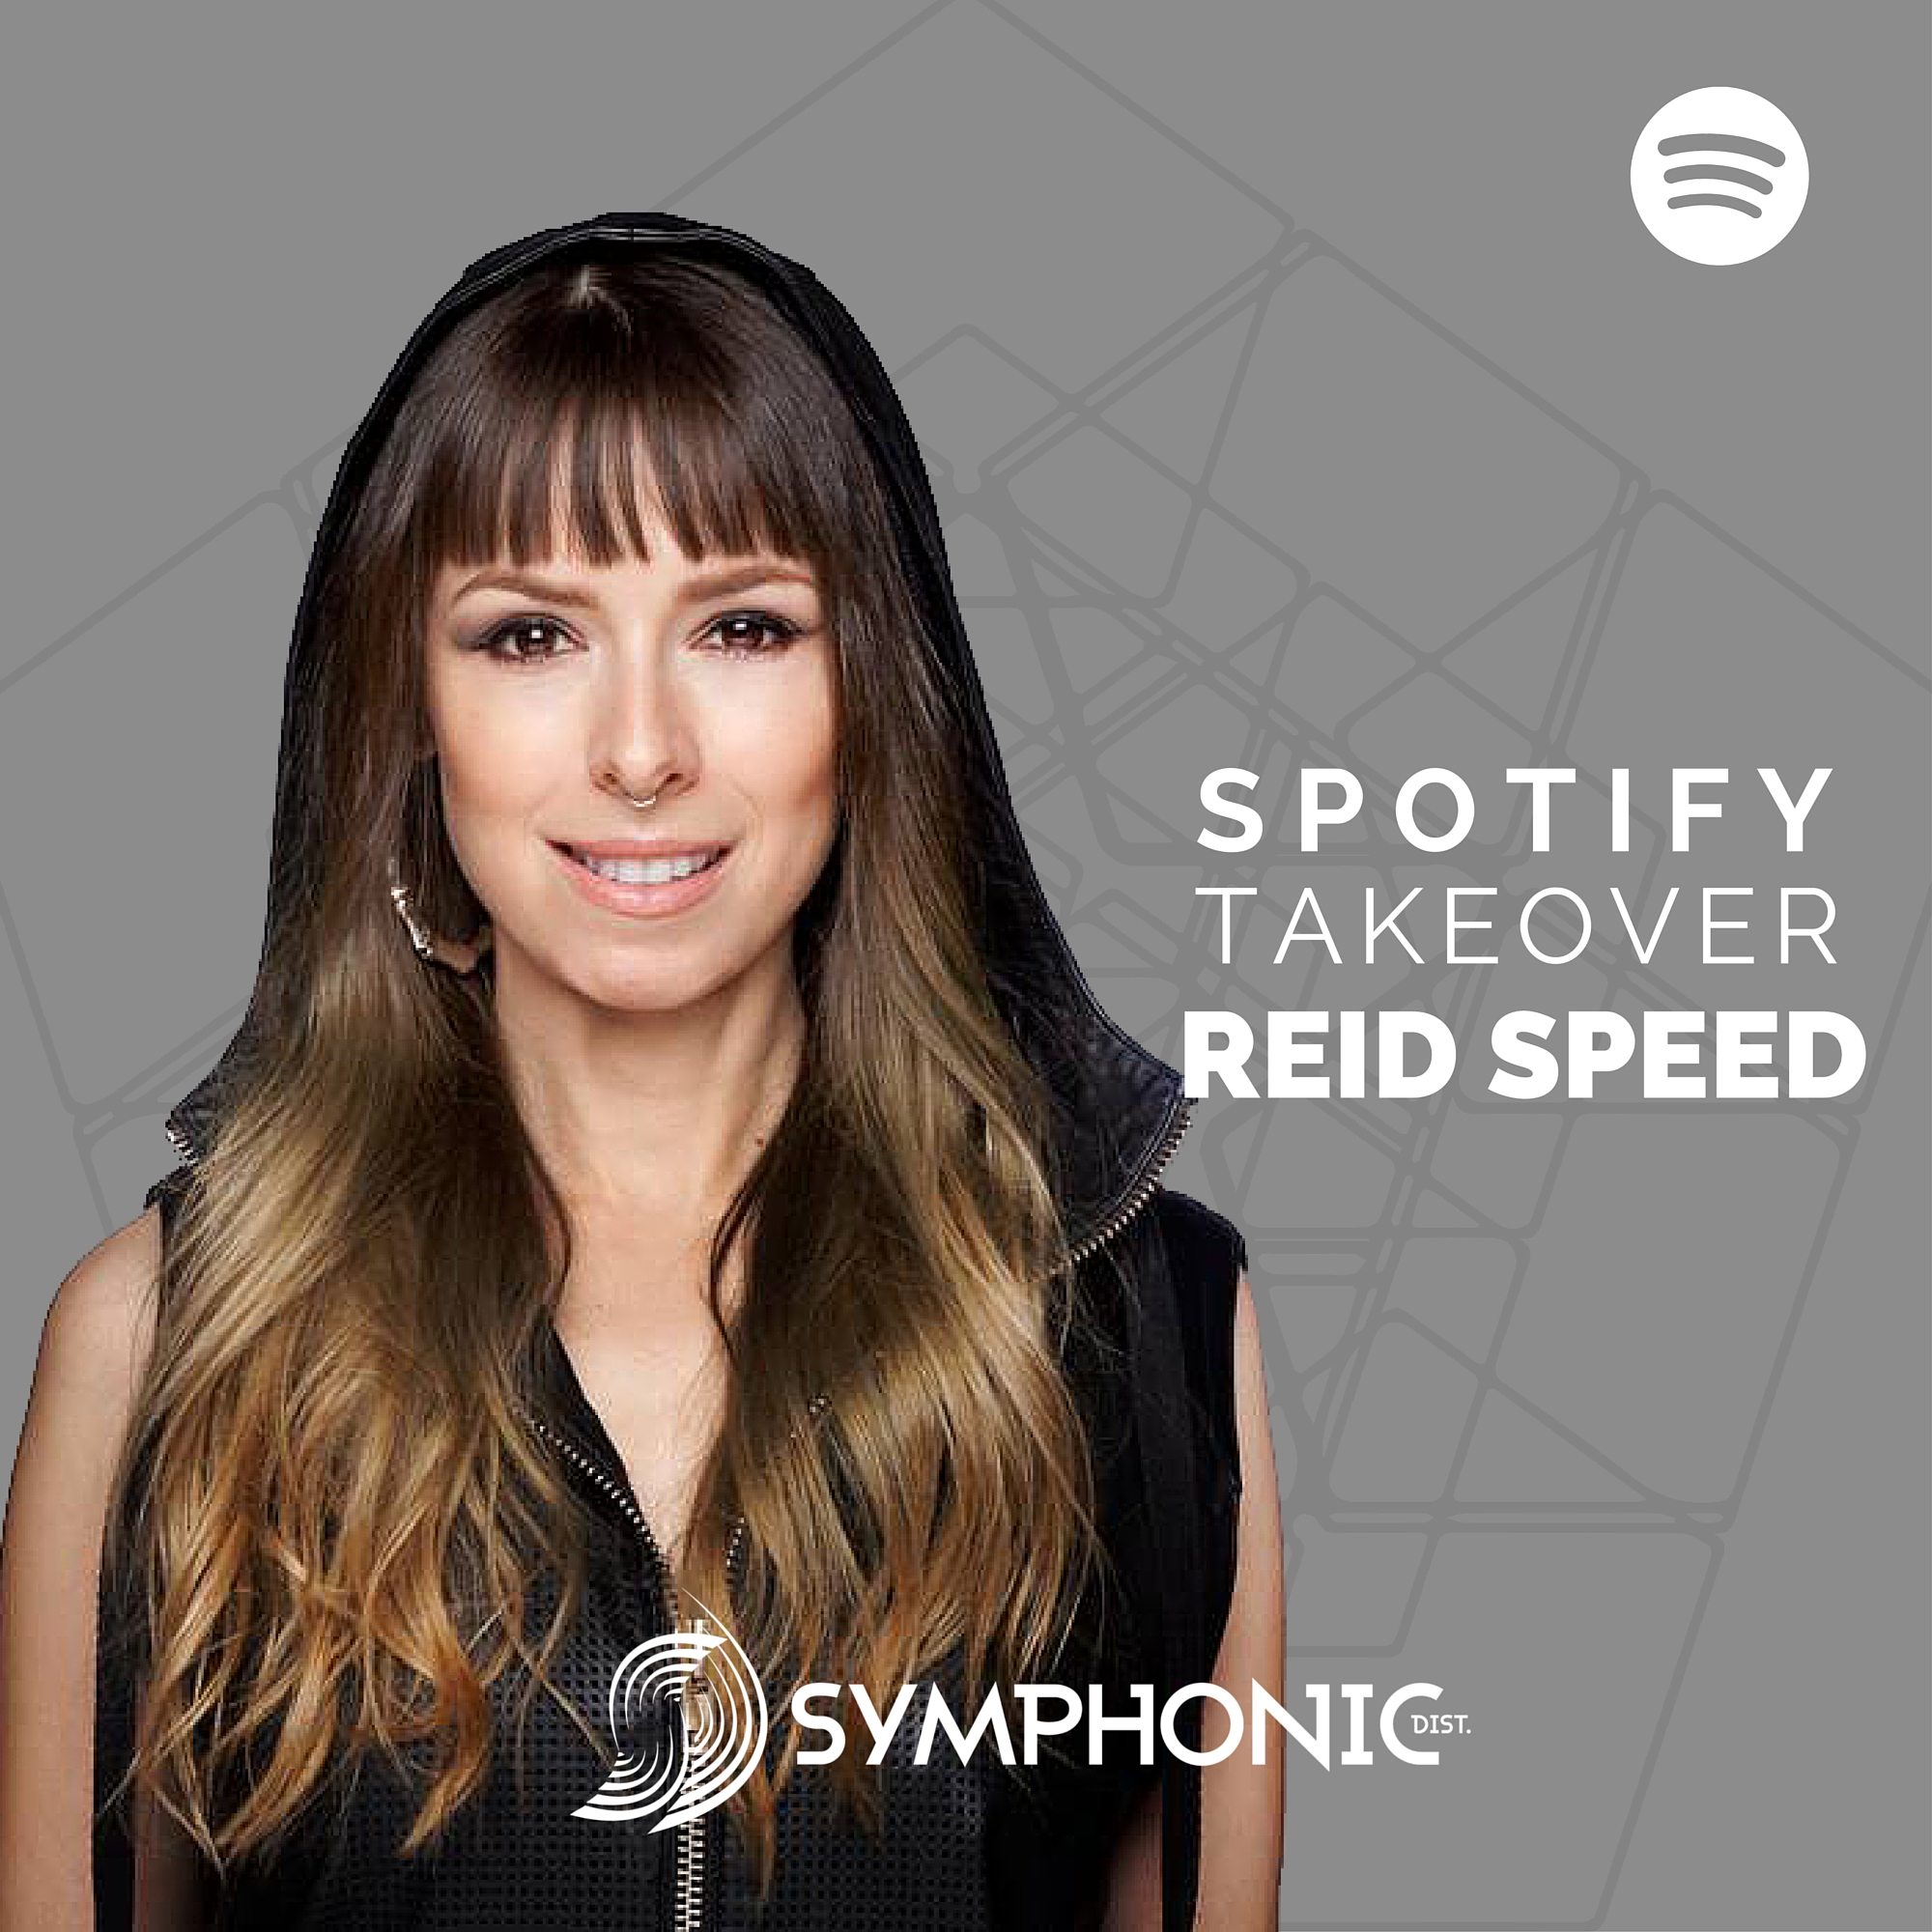 Reid Speed Spotify Takeover